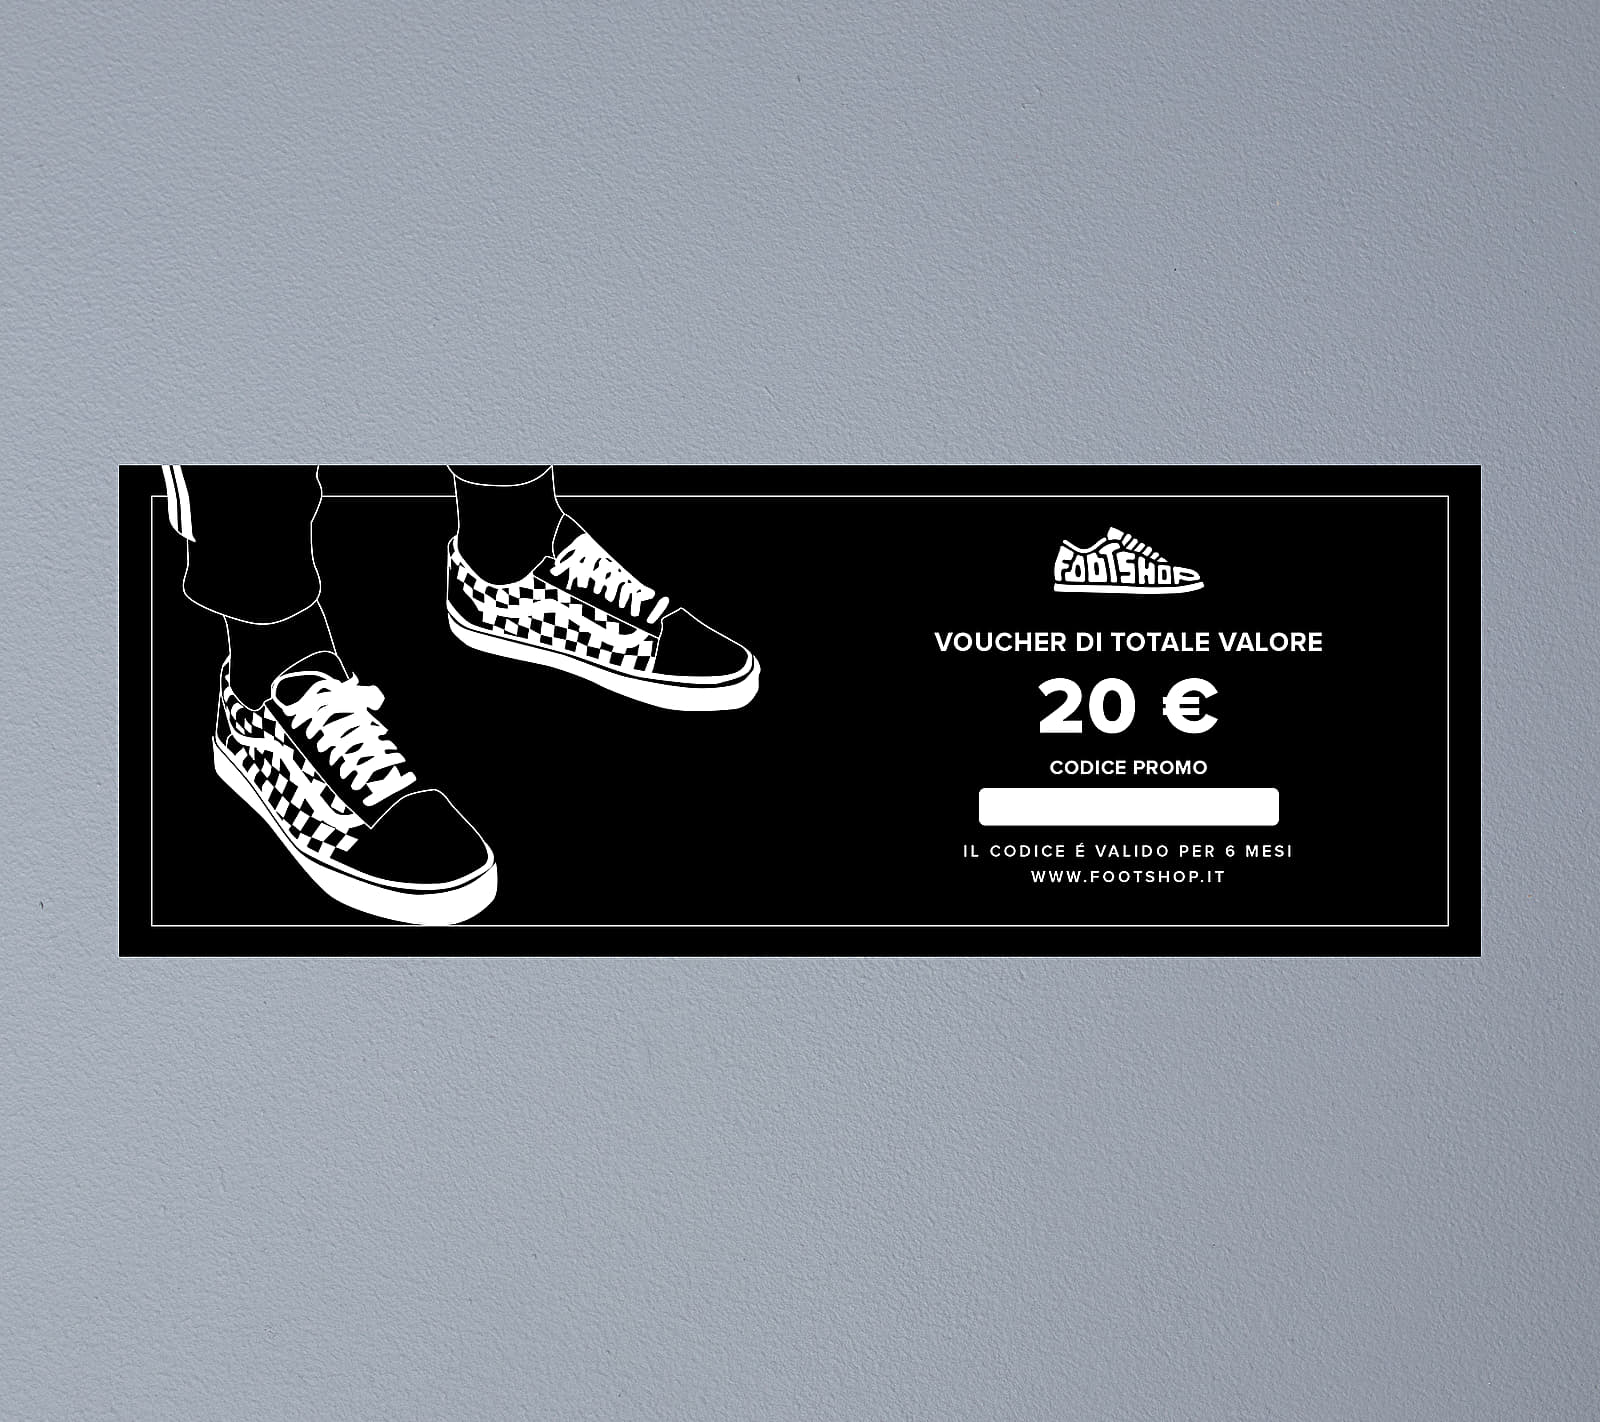 Voucher di totale valore 20 € Footshop